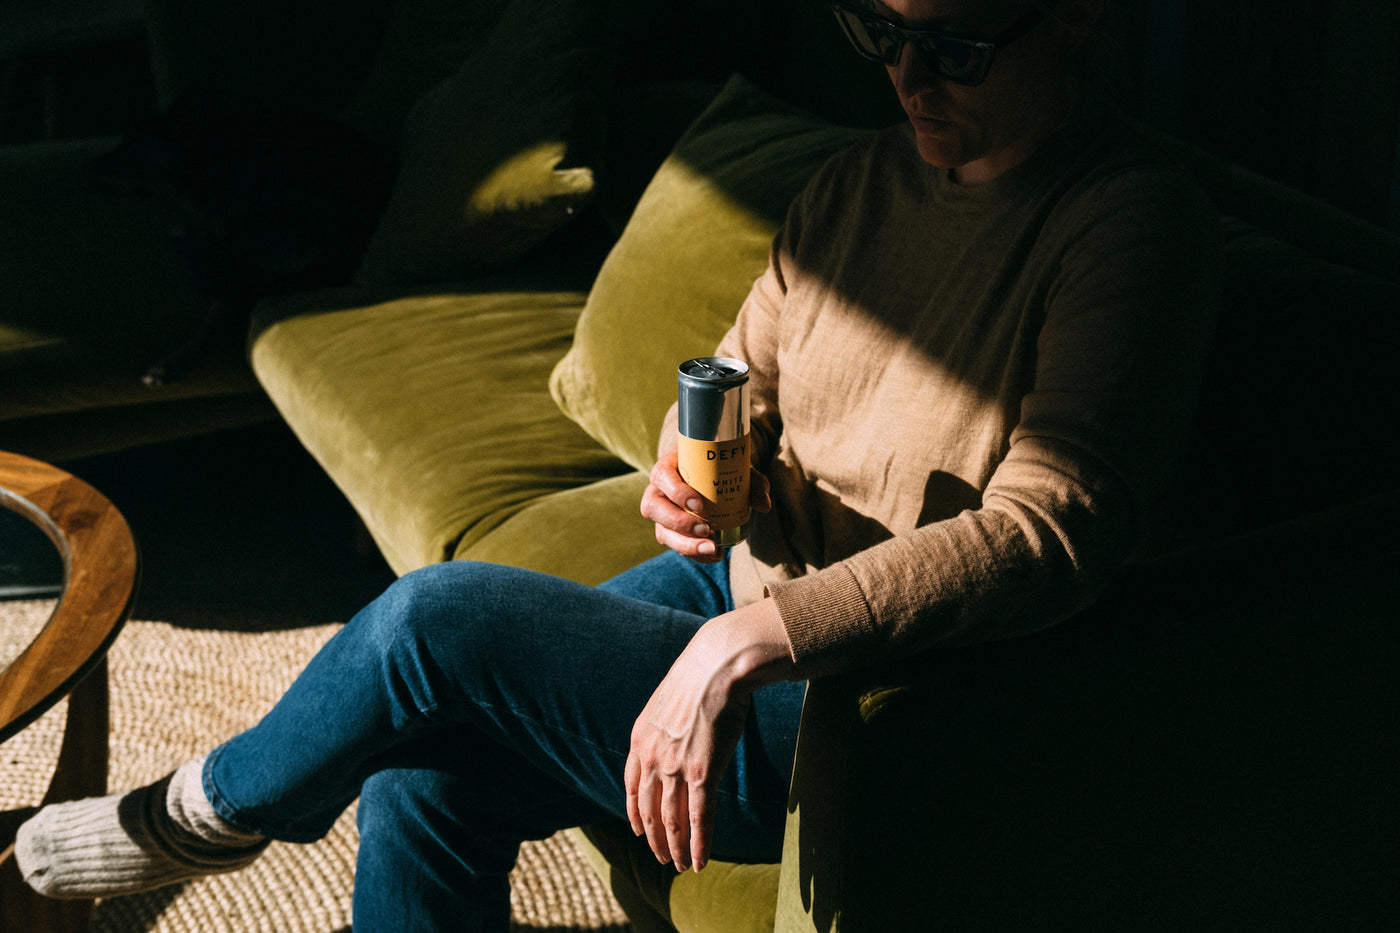 Em, sat on a sofa is strong sunlight, drinking a can of Organic Italian White Wine from DEFY